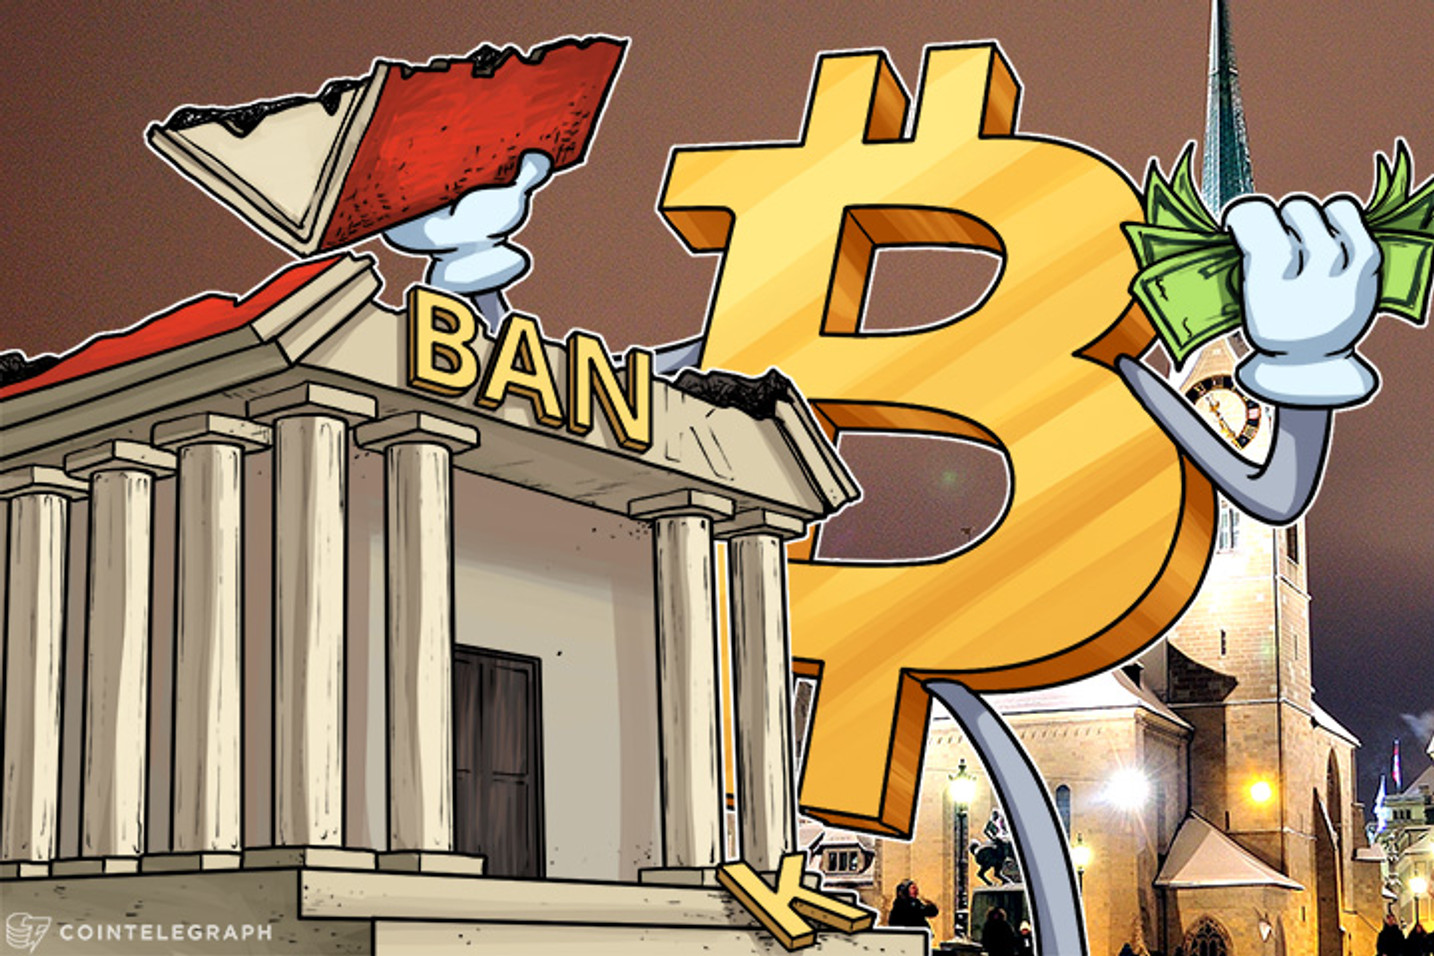 Don't Bank On It! Bitcoin Prices Rise, Banks Renationalize